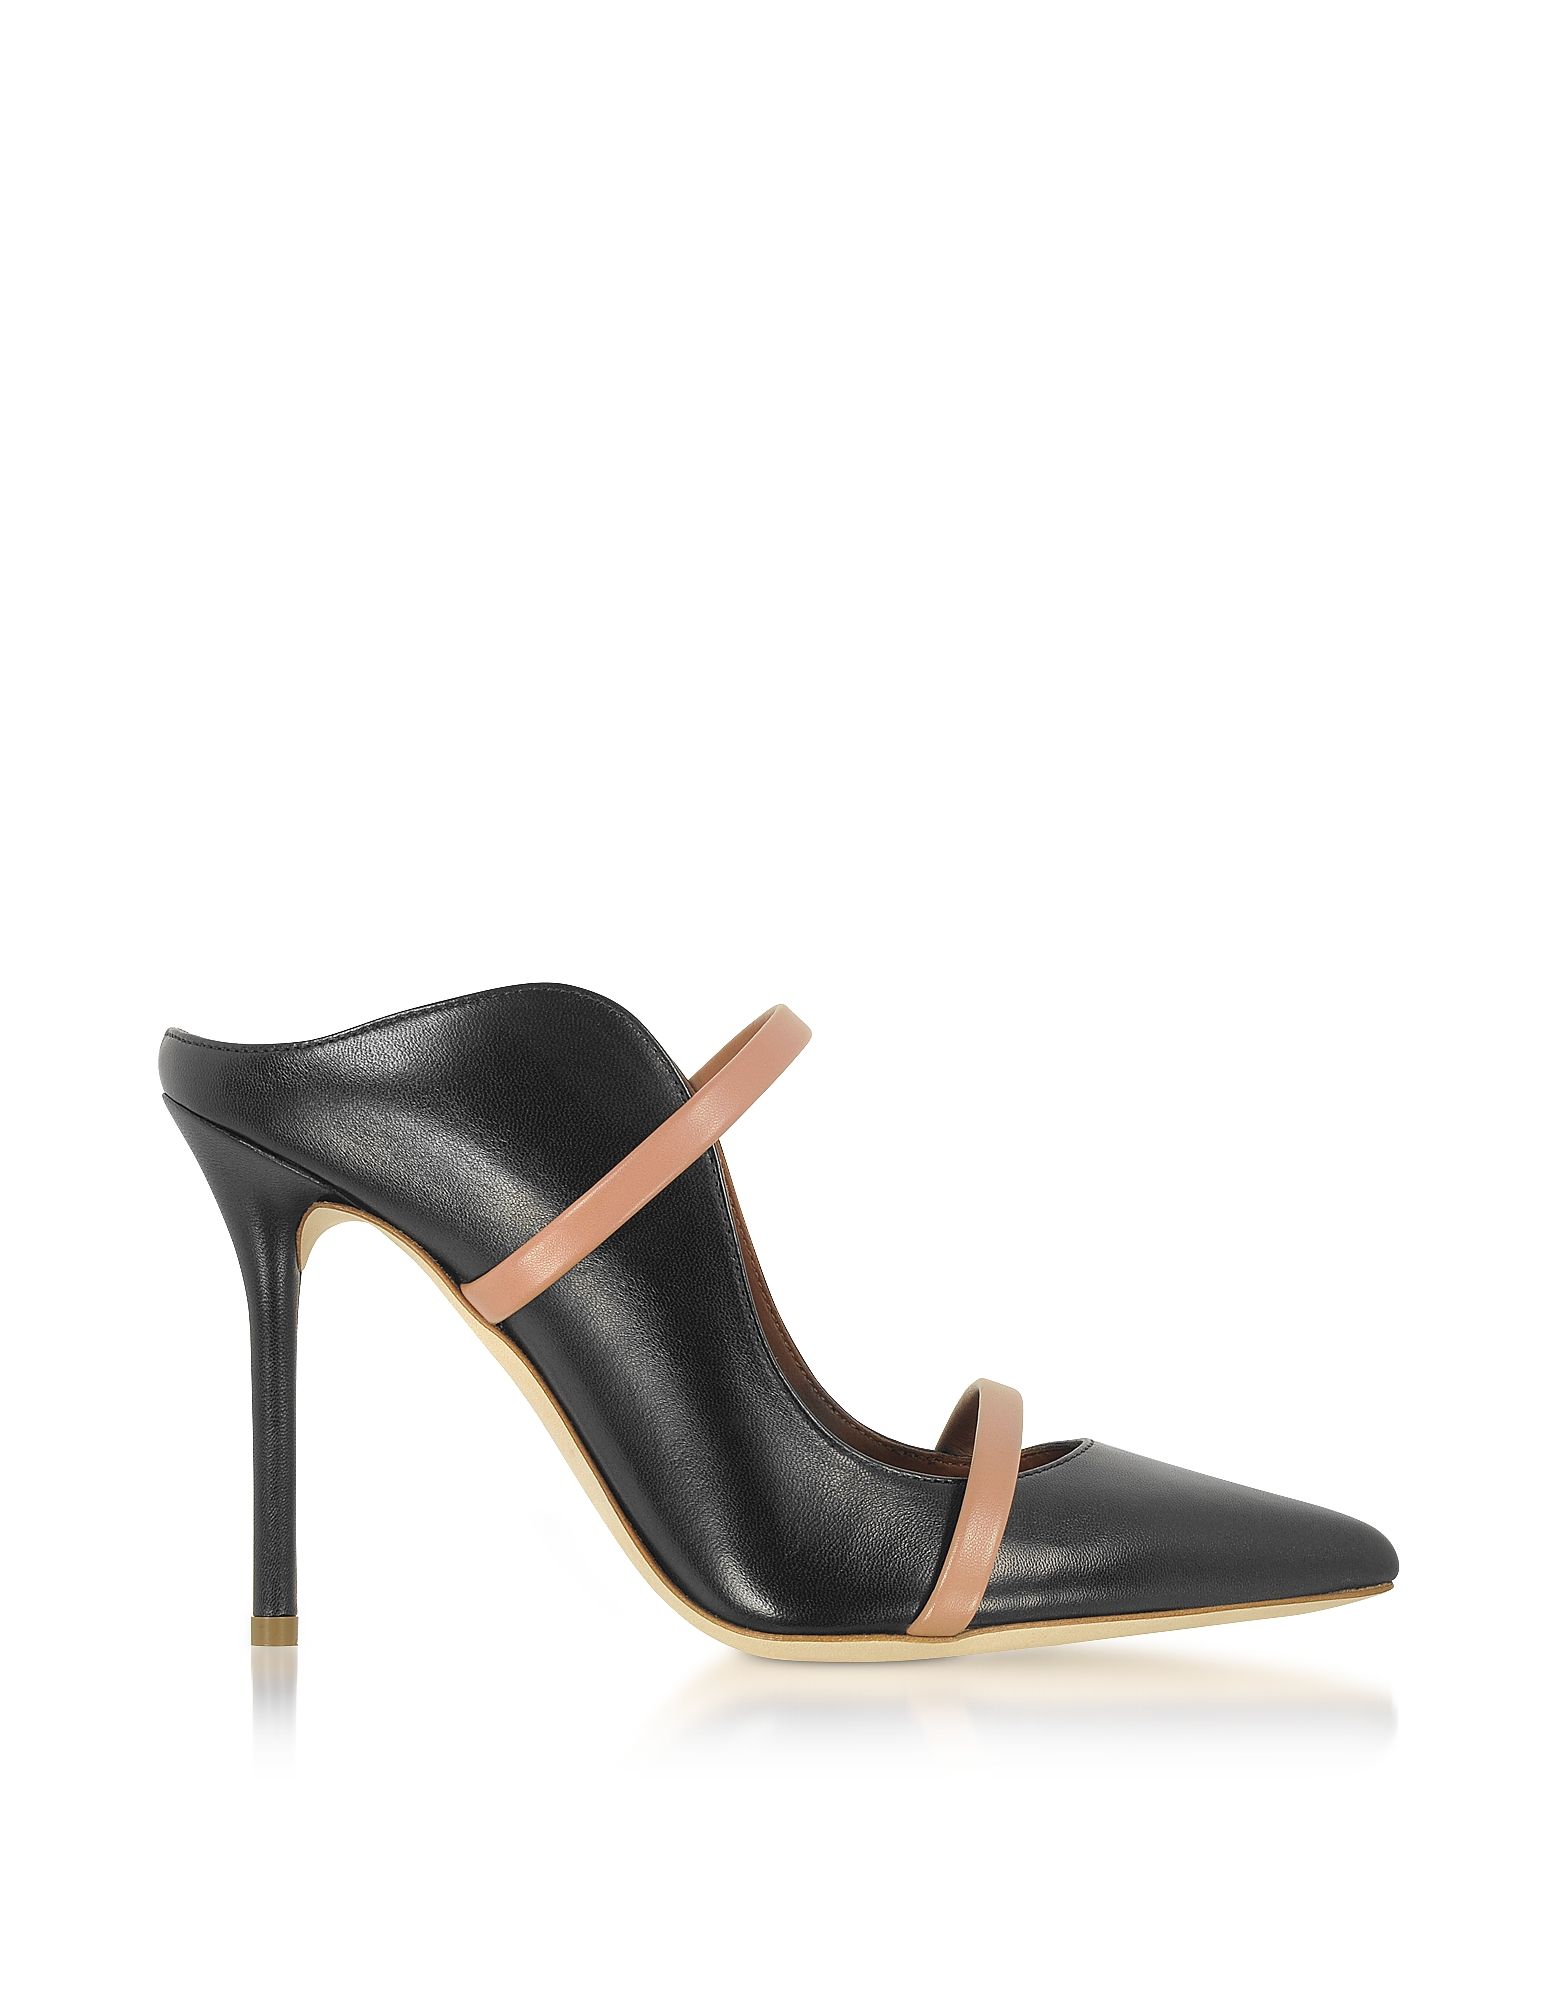 Malone Souliers Shoes, Maureen Black and Nude Nappa Leather High Heel Mules